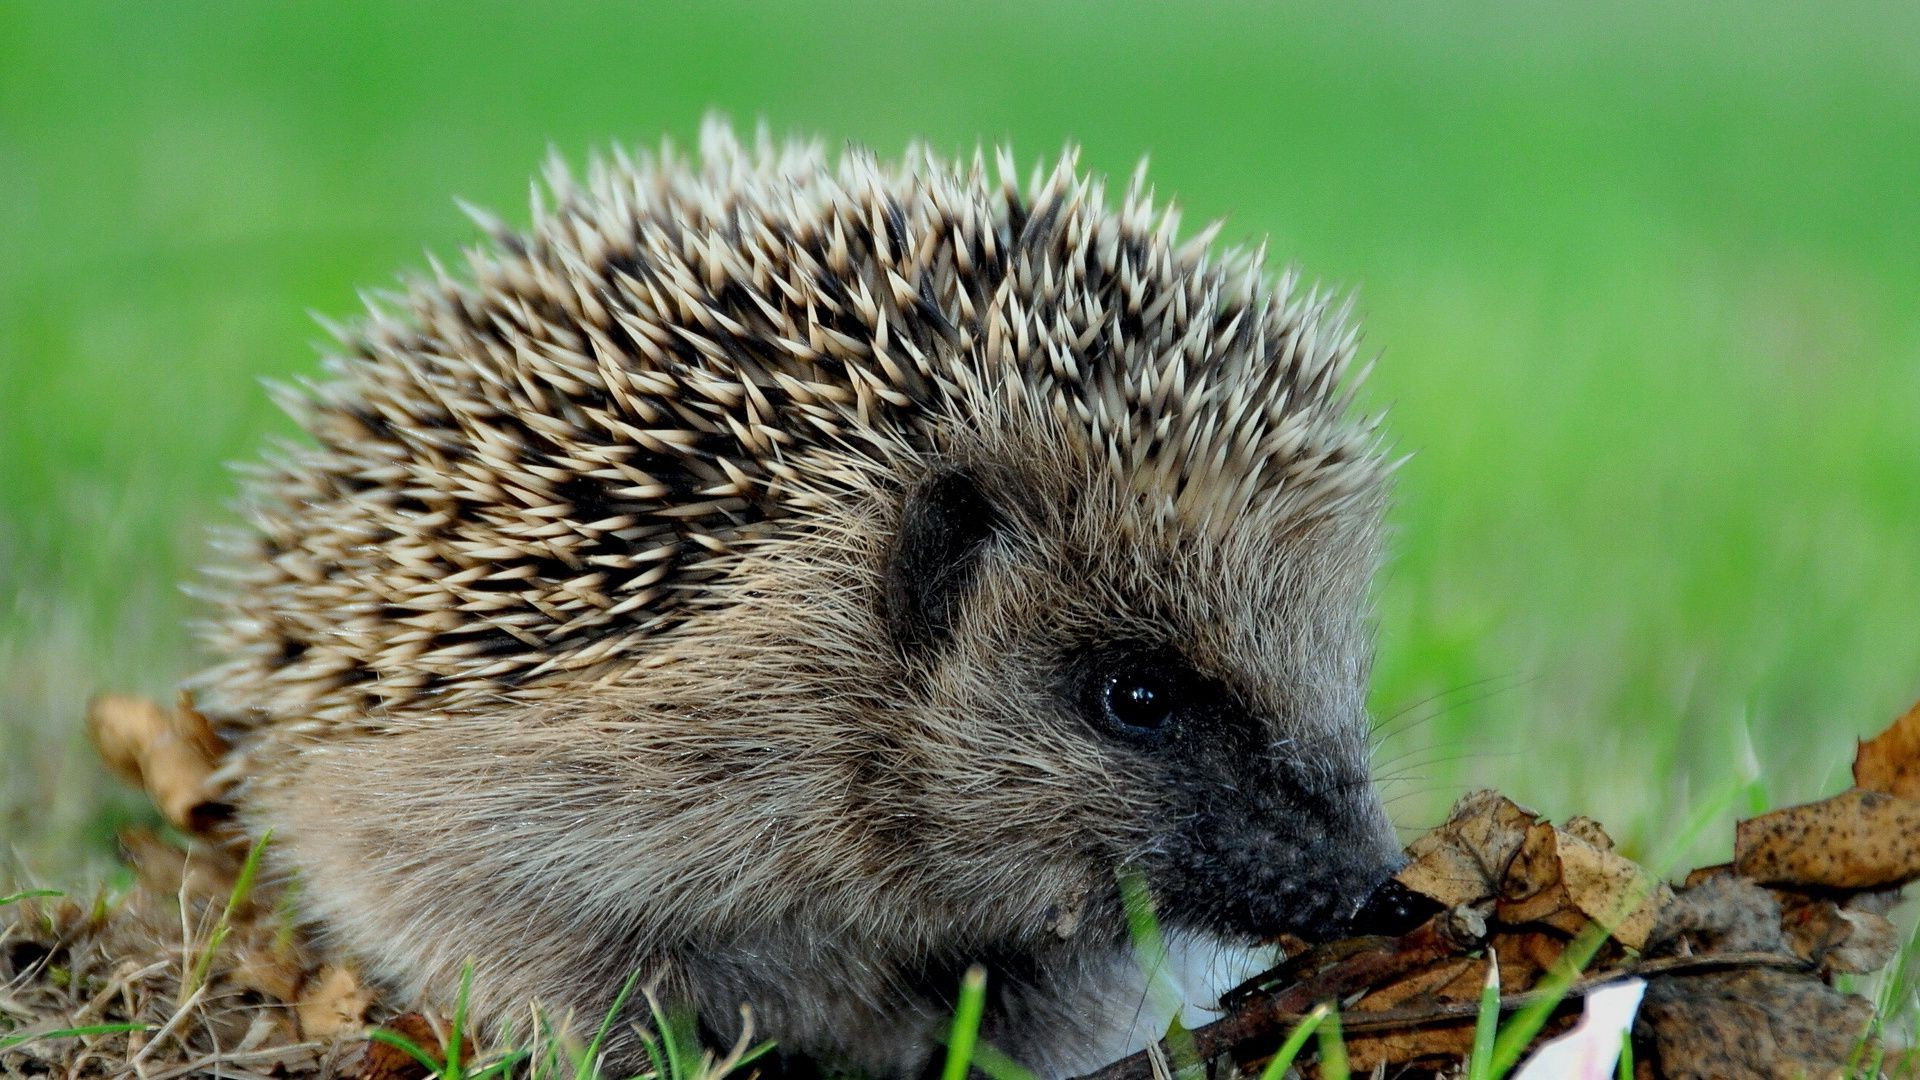 hedgehog hedgehog autumn nature